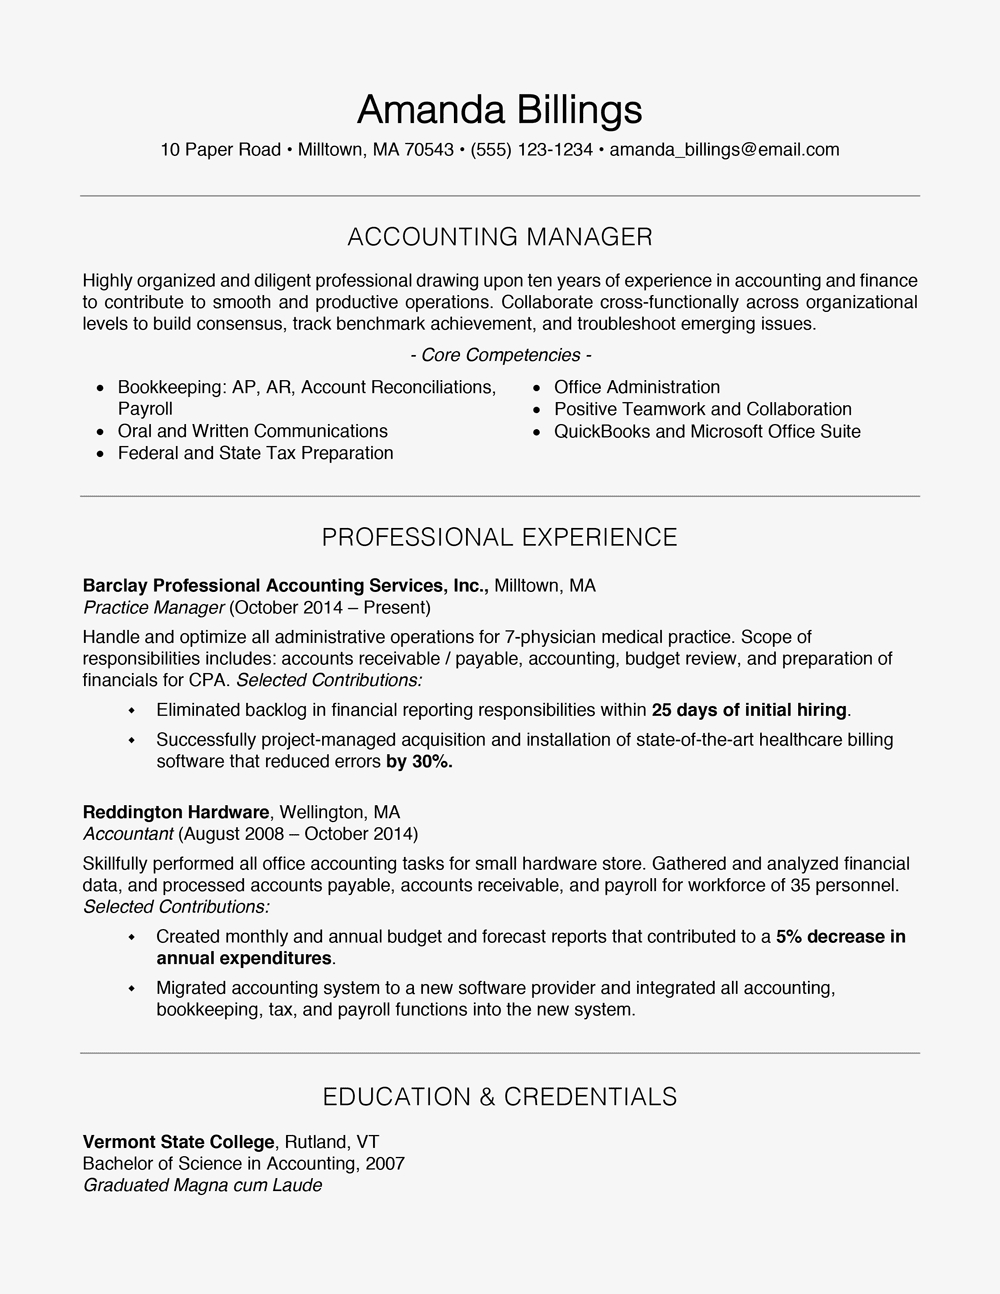 Professional Accountant Resume Template - 100 Free Professional Resume Examples and Writing Tips